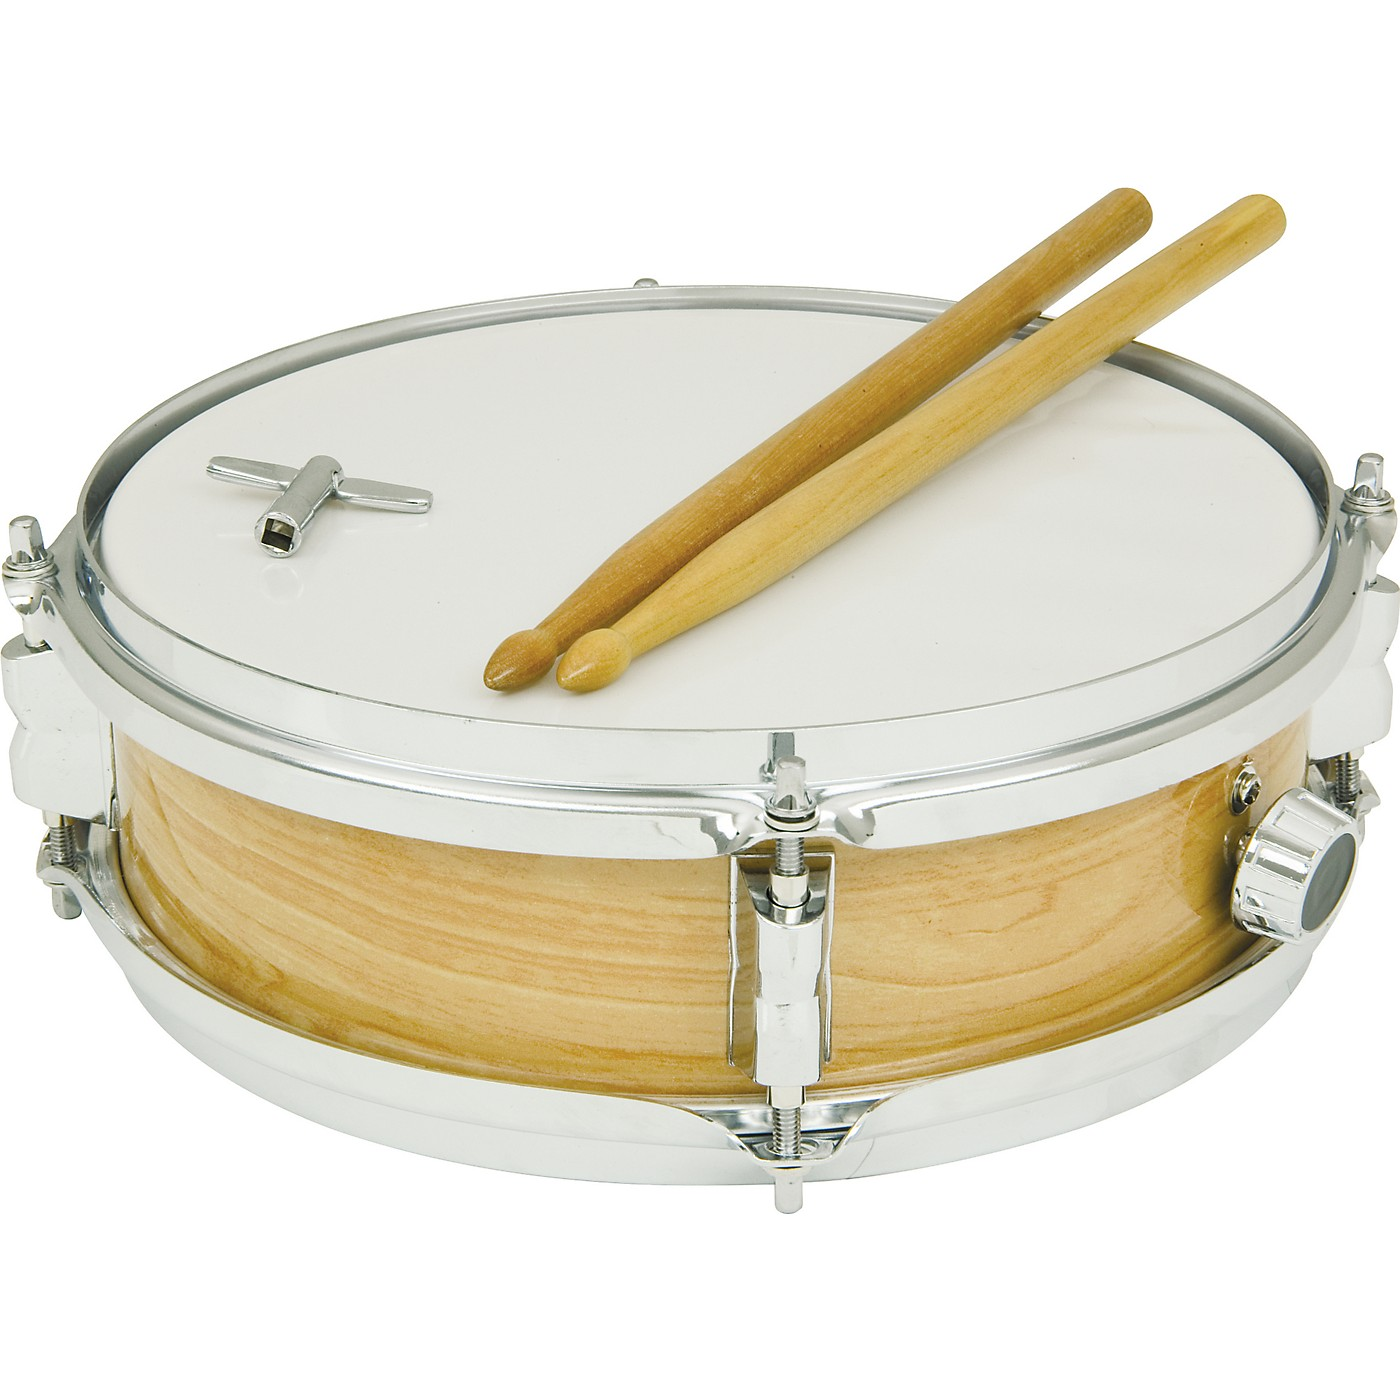 Rhythm Band RB1030 Deluxe Junior Snare Drum Outfit thumbnail